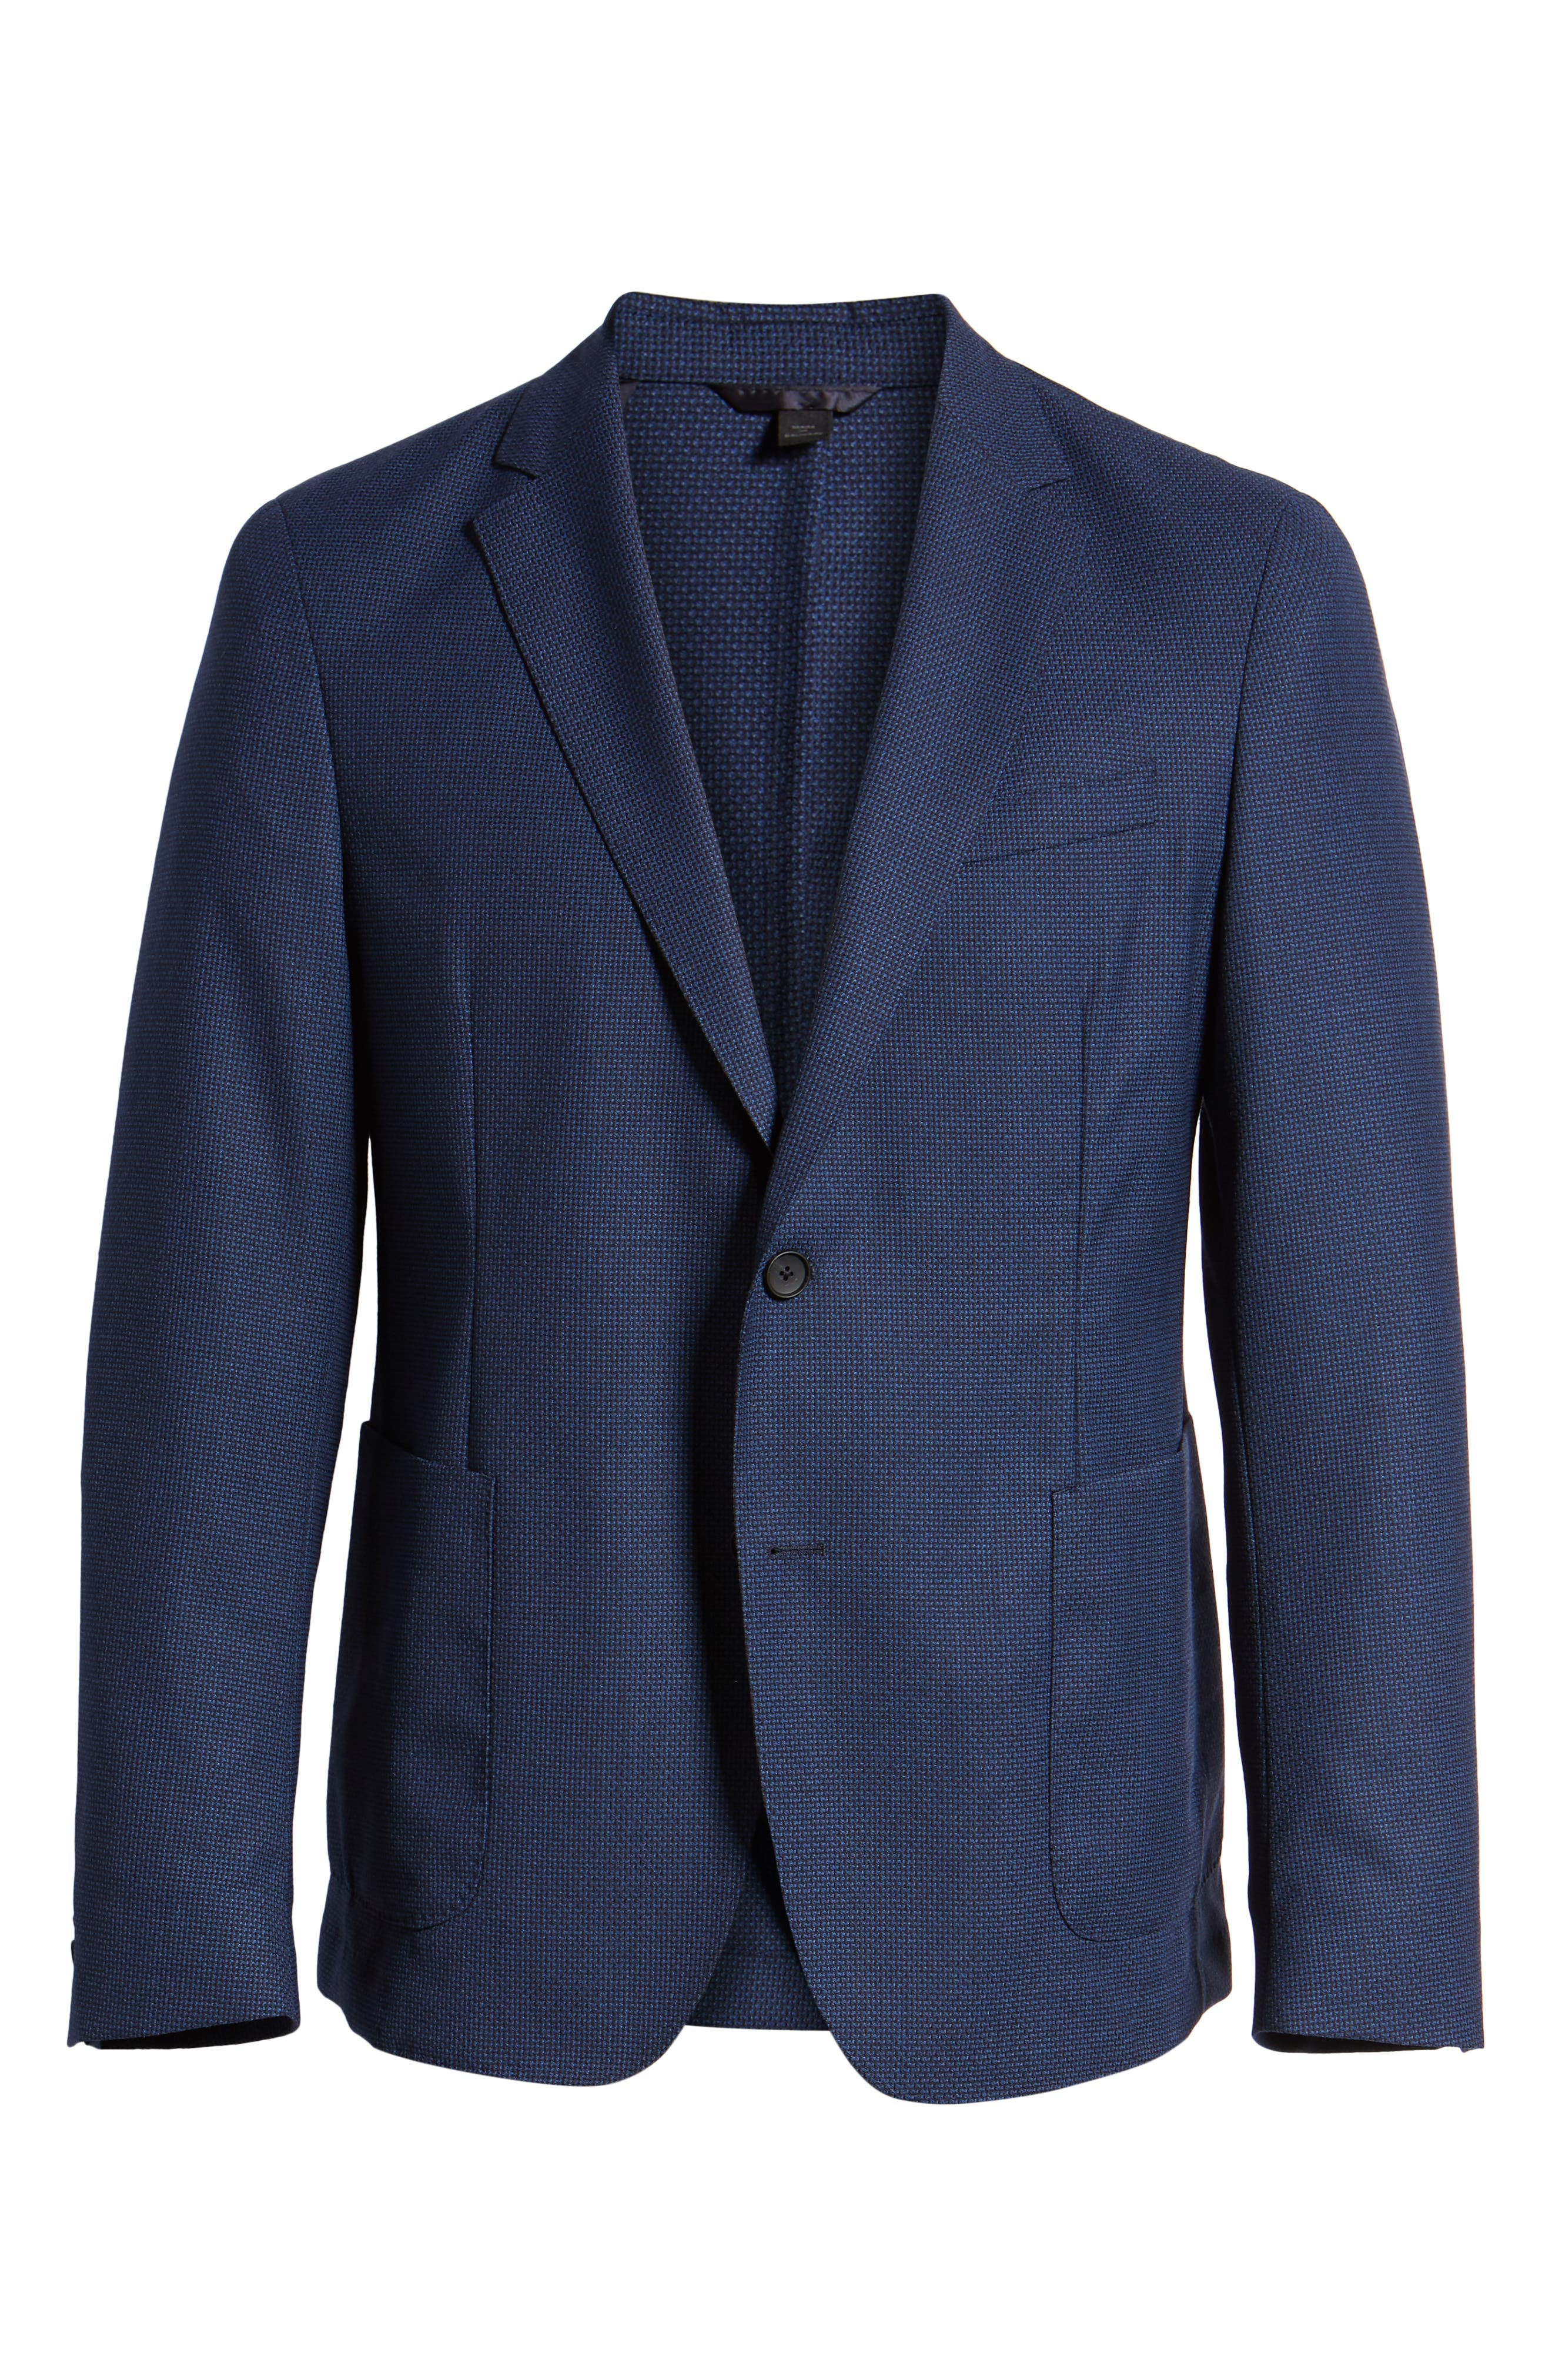 Nold Trim Fit Wool Blazer,                             Alternate thumbnail 5, color,                             BLUE